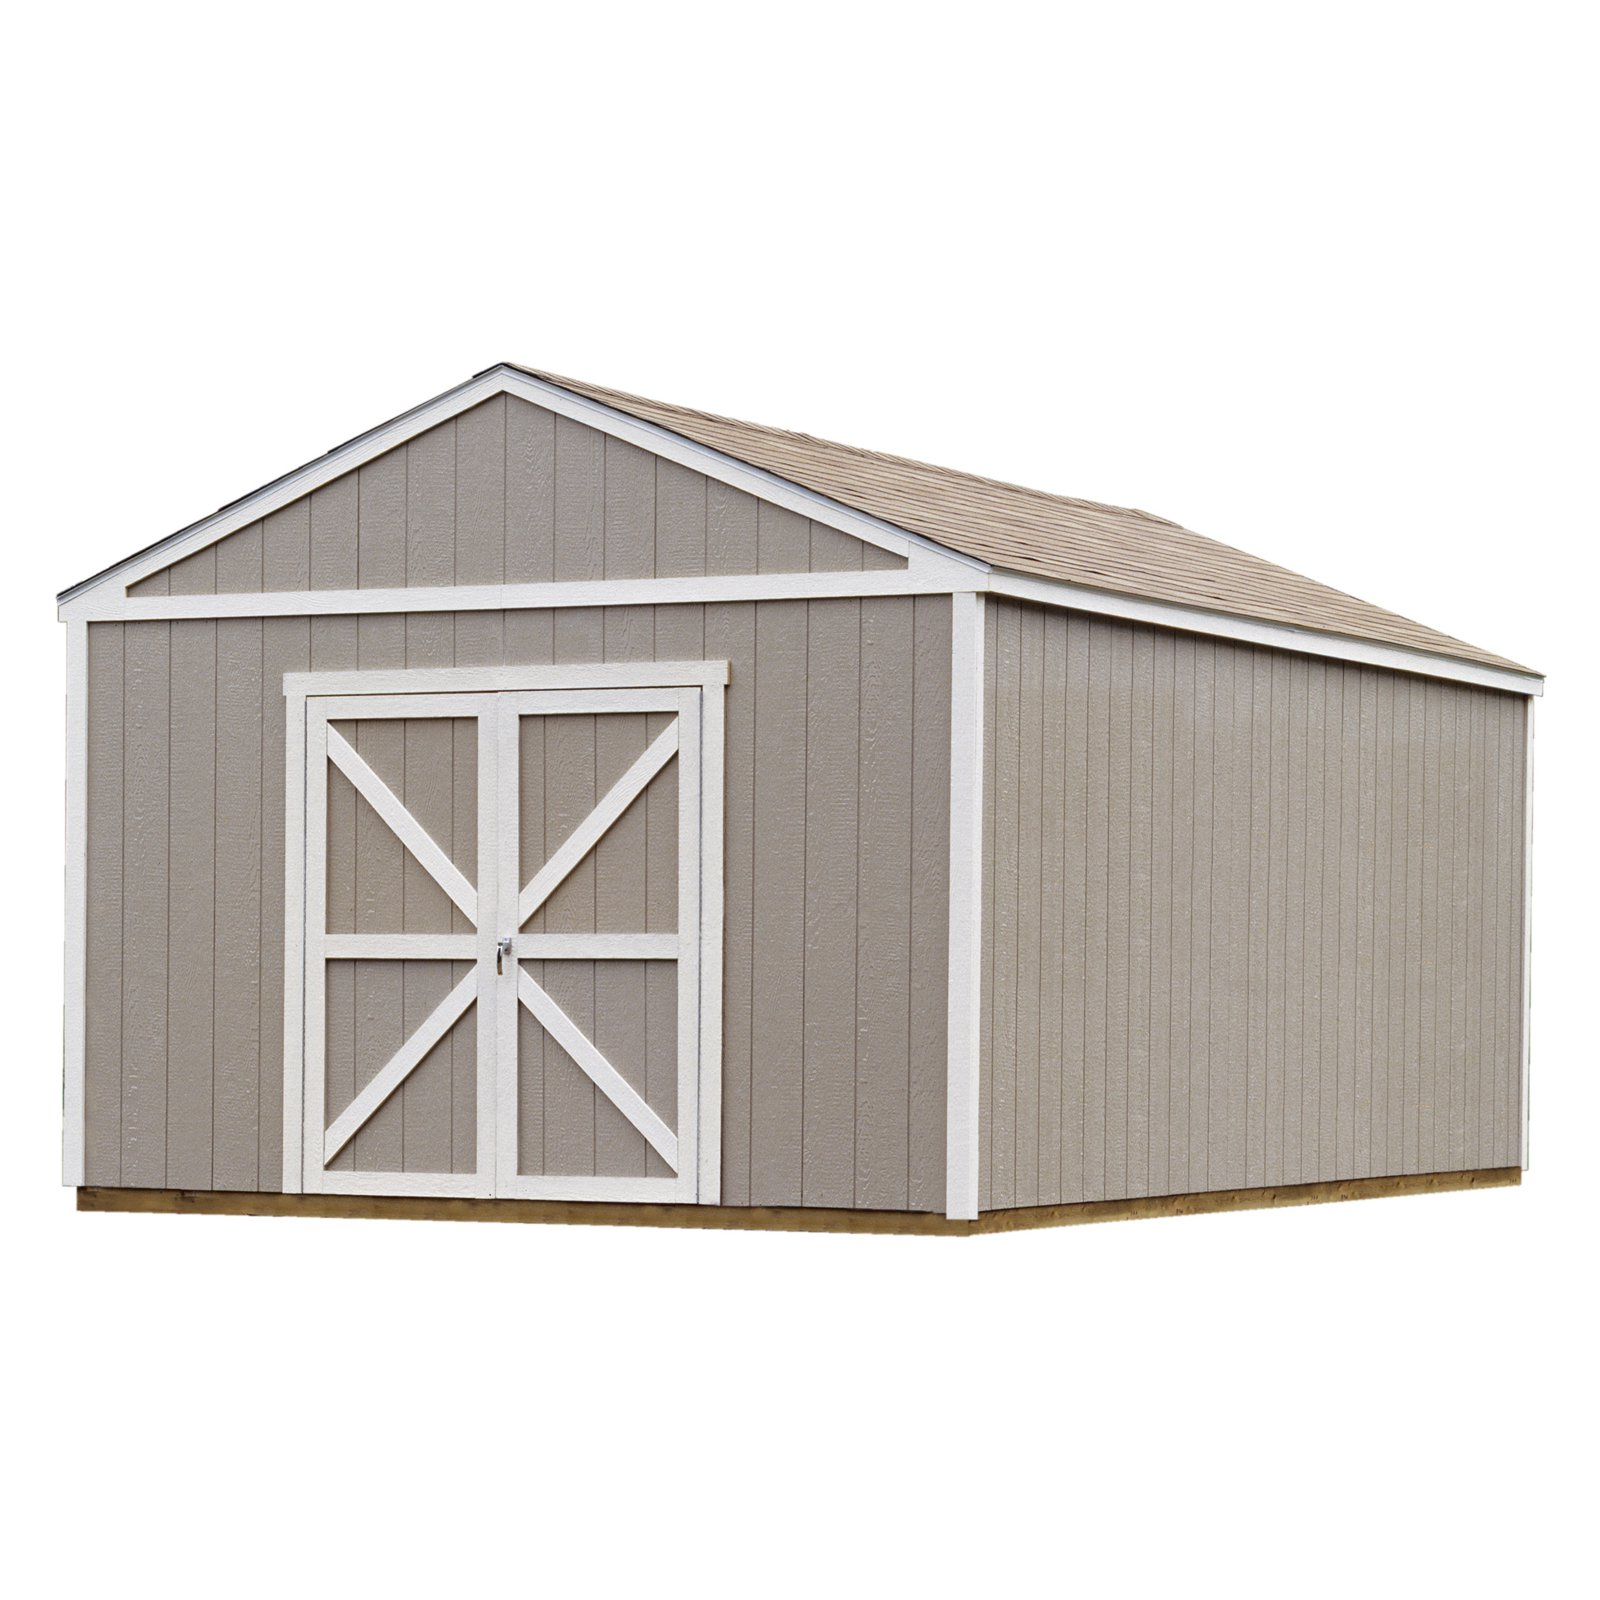 Handy Home Columbia Storage Shed - 12 x 20 ft.